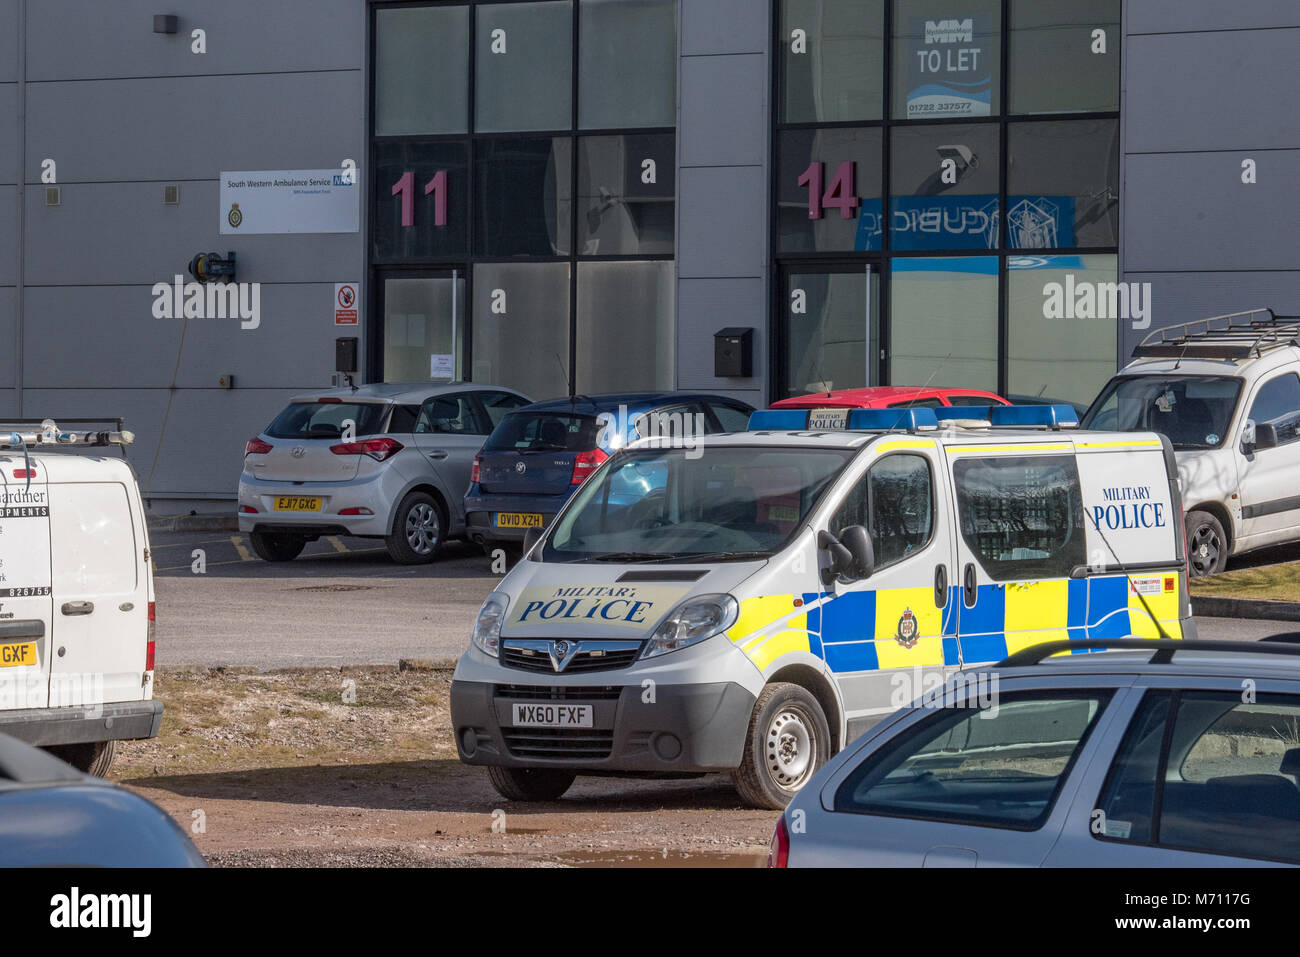 Salisbury, United Kingdom. 7 March 2018. Investigations continue into the suspected poisoning of a former Russian - Stock Image